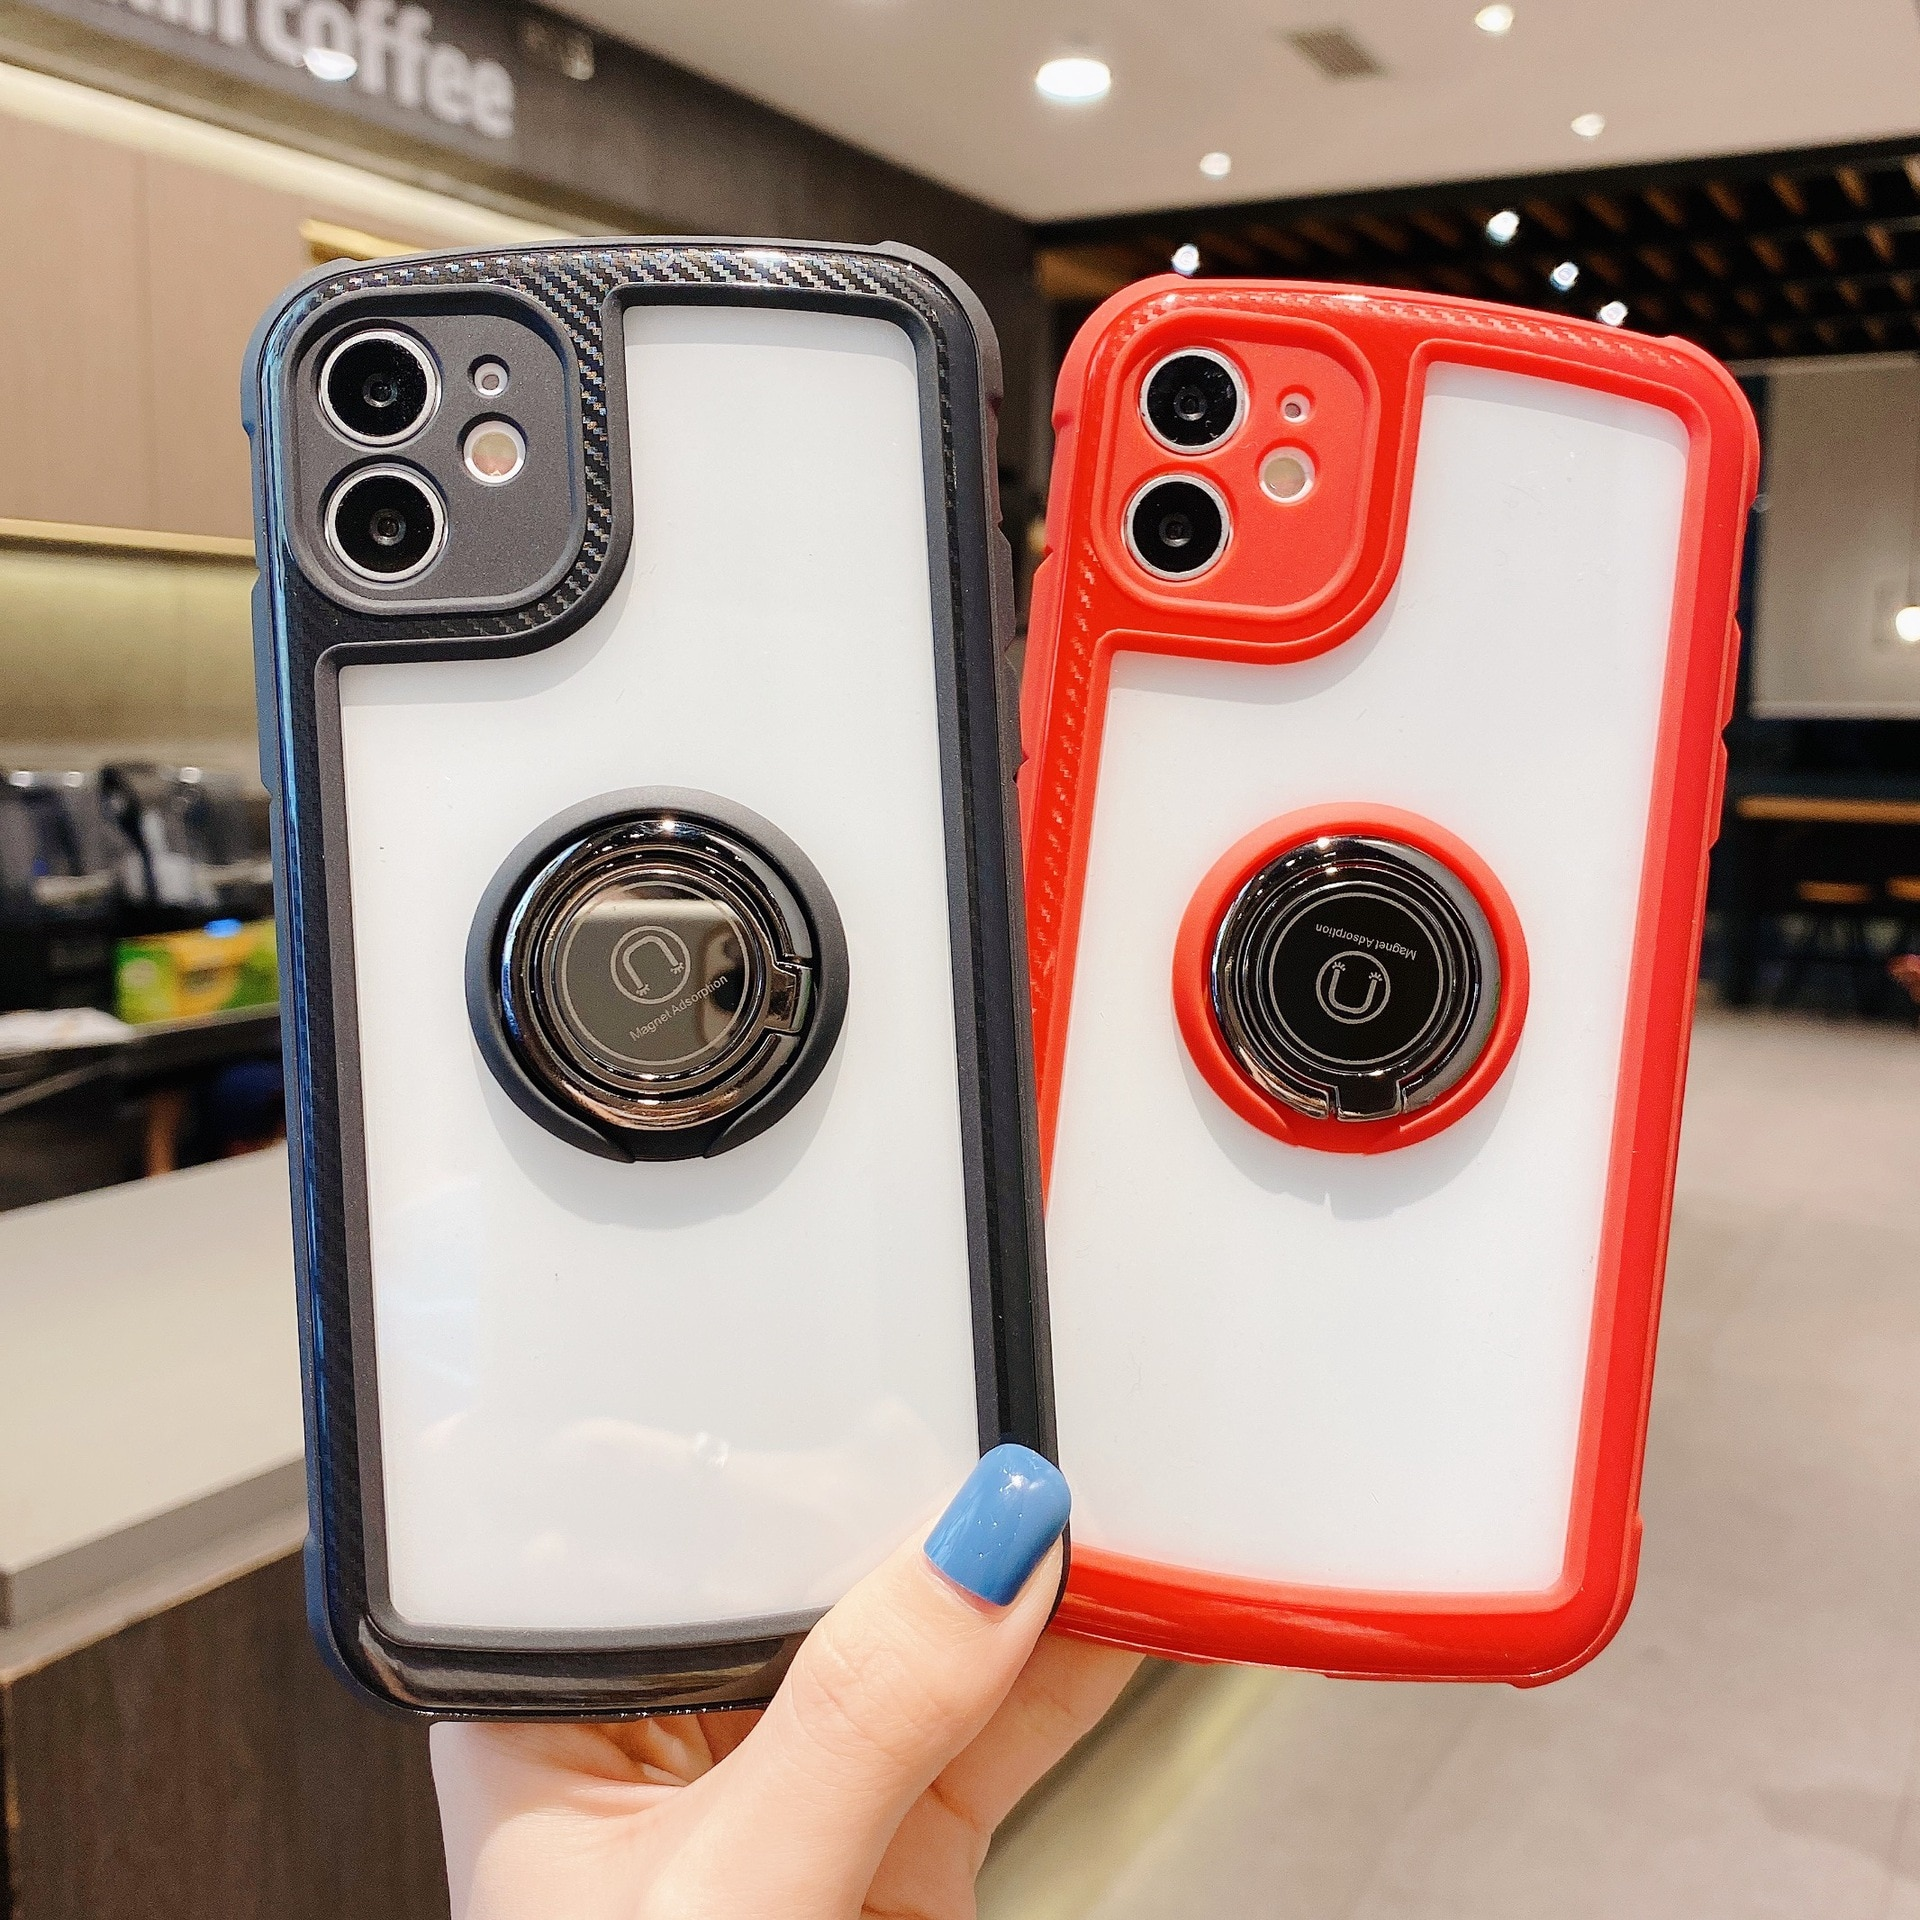 Luxury Ring Case For Apple iPhone 11 12 Pro Max mini SE 2020 X XR XS Max 7 8 Plus Holder Stand Milit